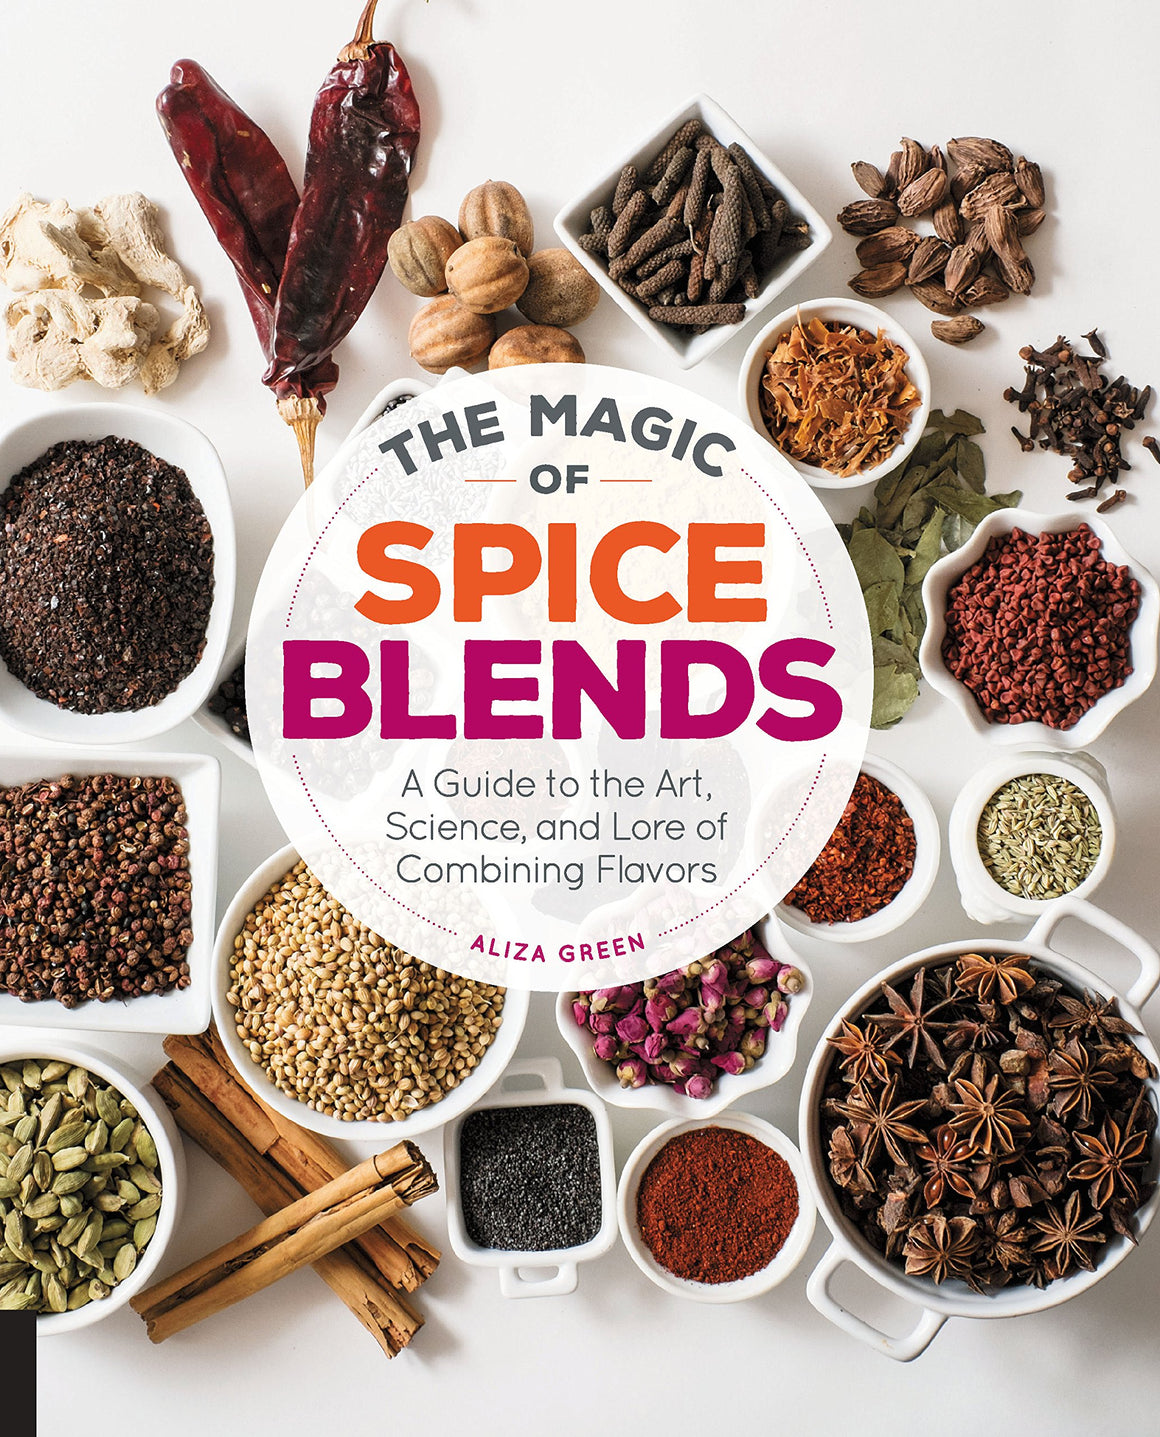 Aliza Green. The Magic of Spice Blends: A Guide to the Art, Science, and Lore of Combining Flavors.